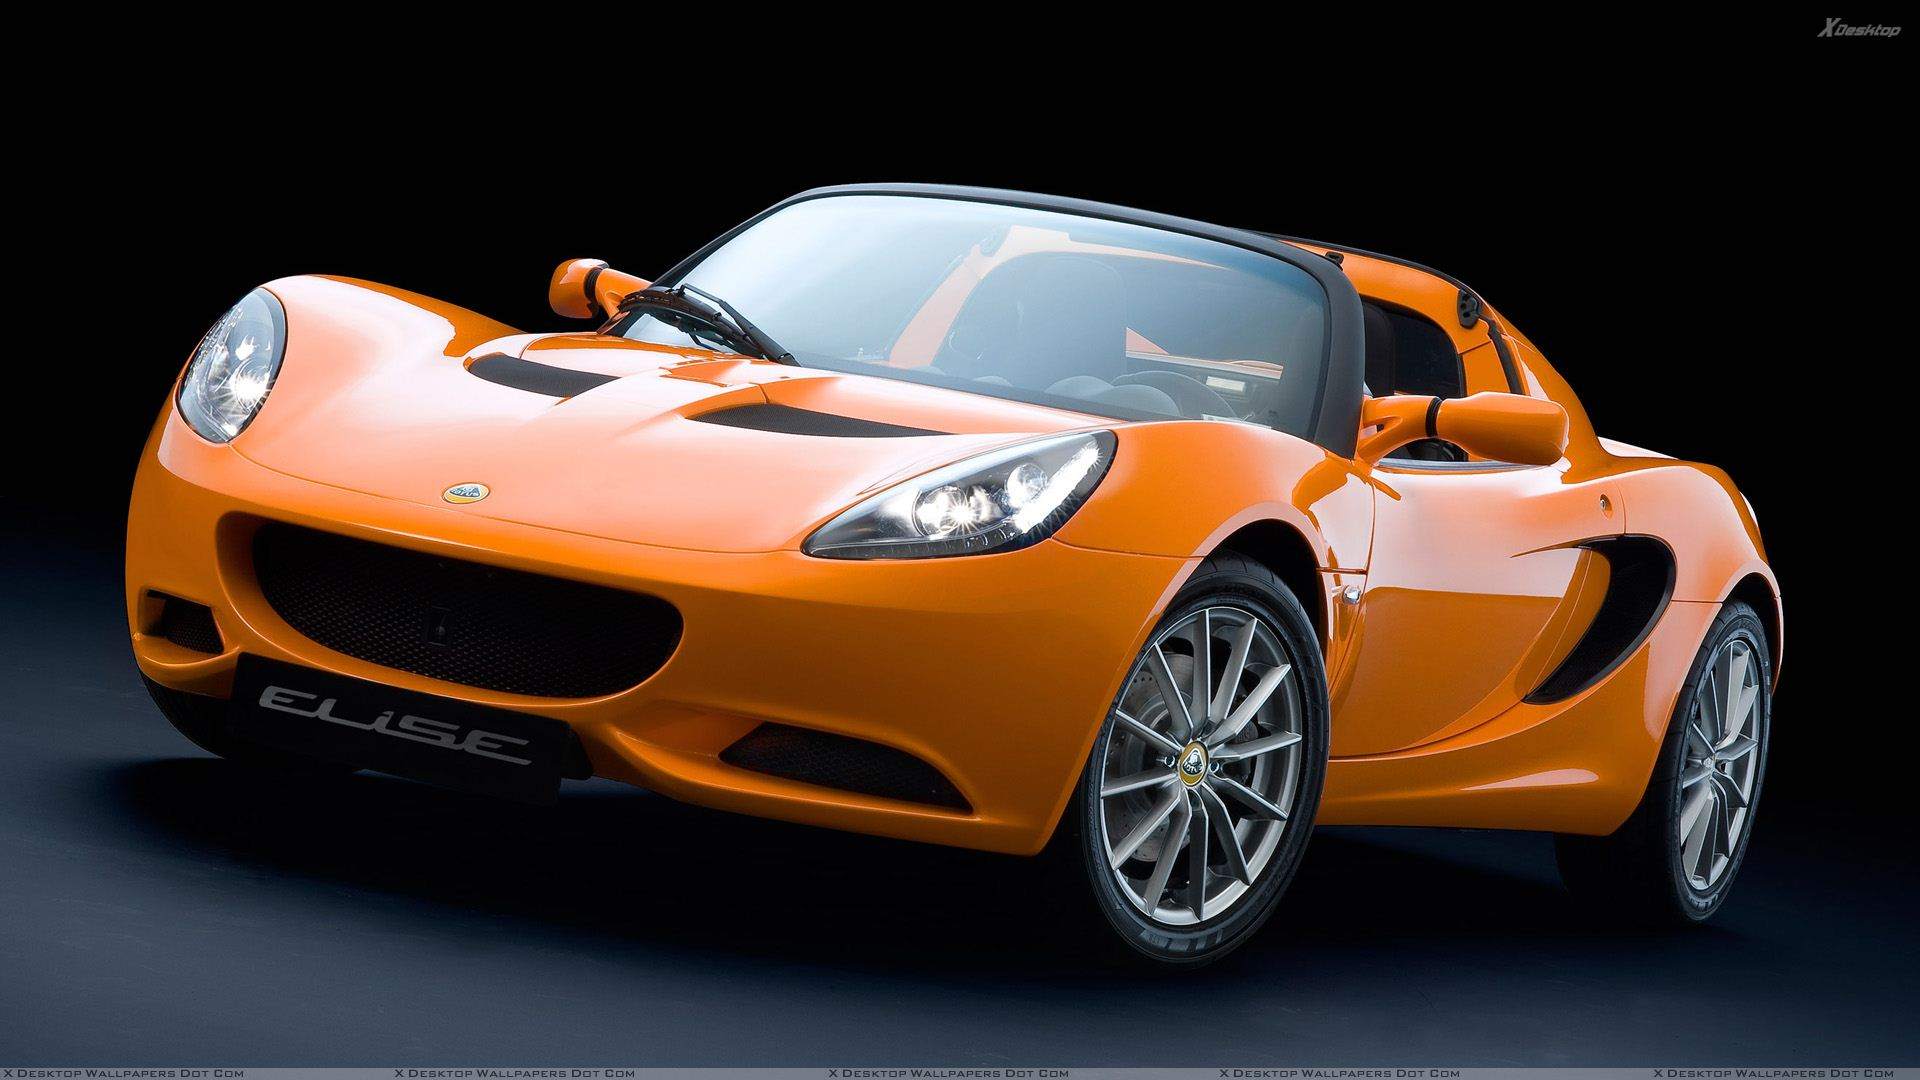 Lotus Elise Wallpapers Photos Amp Images In Hd